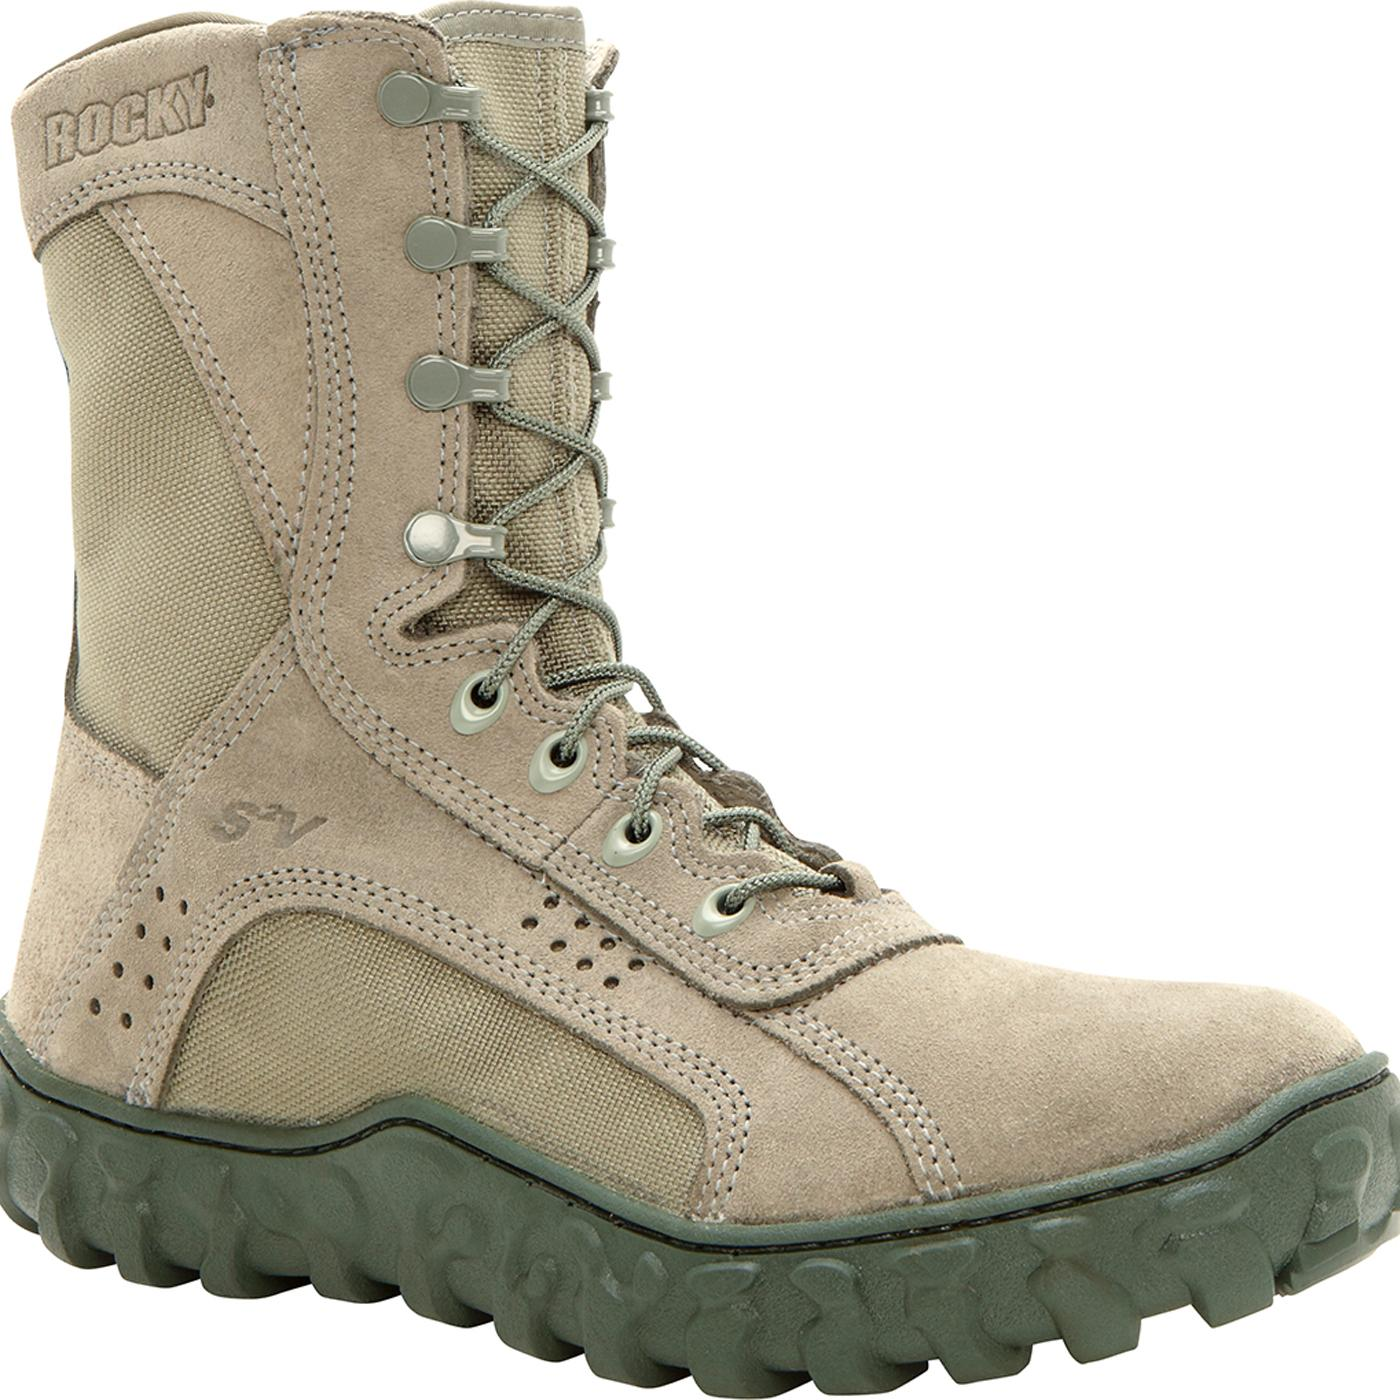 Sage Green Steel Toe Rocky S2V Military Boot, #FQ0006108